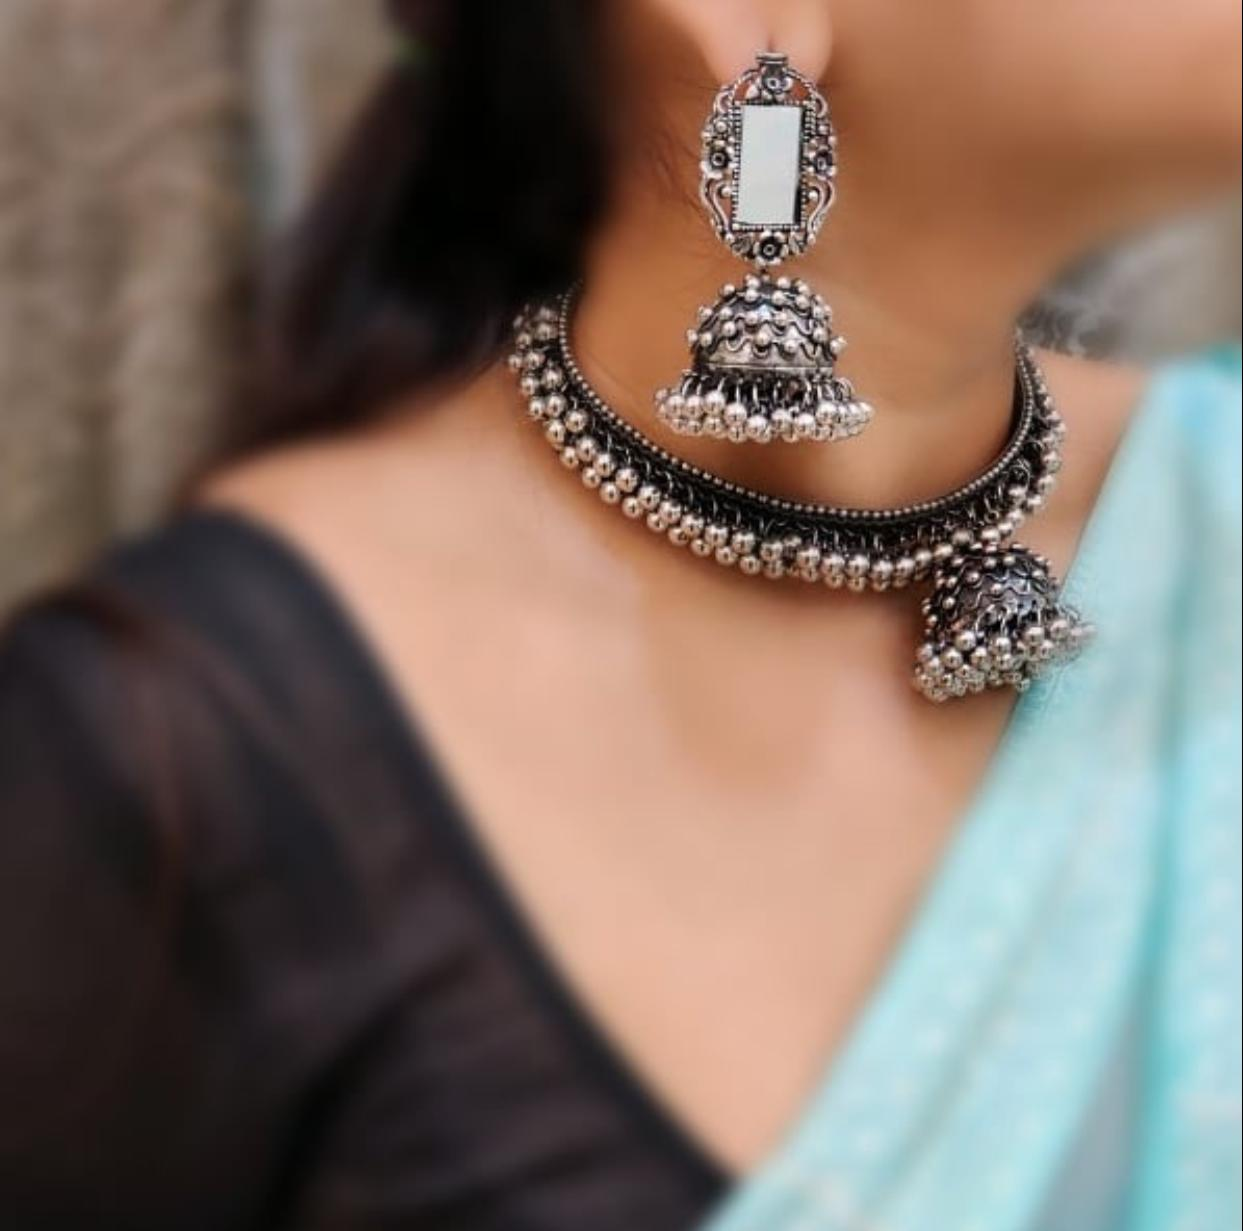 German Silver Choker Necklace Set With Matching Jhumki Earrings